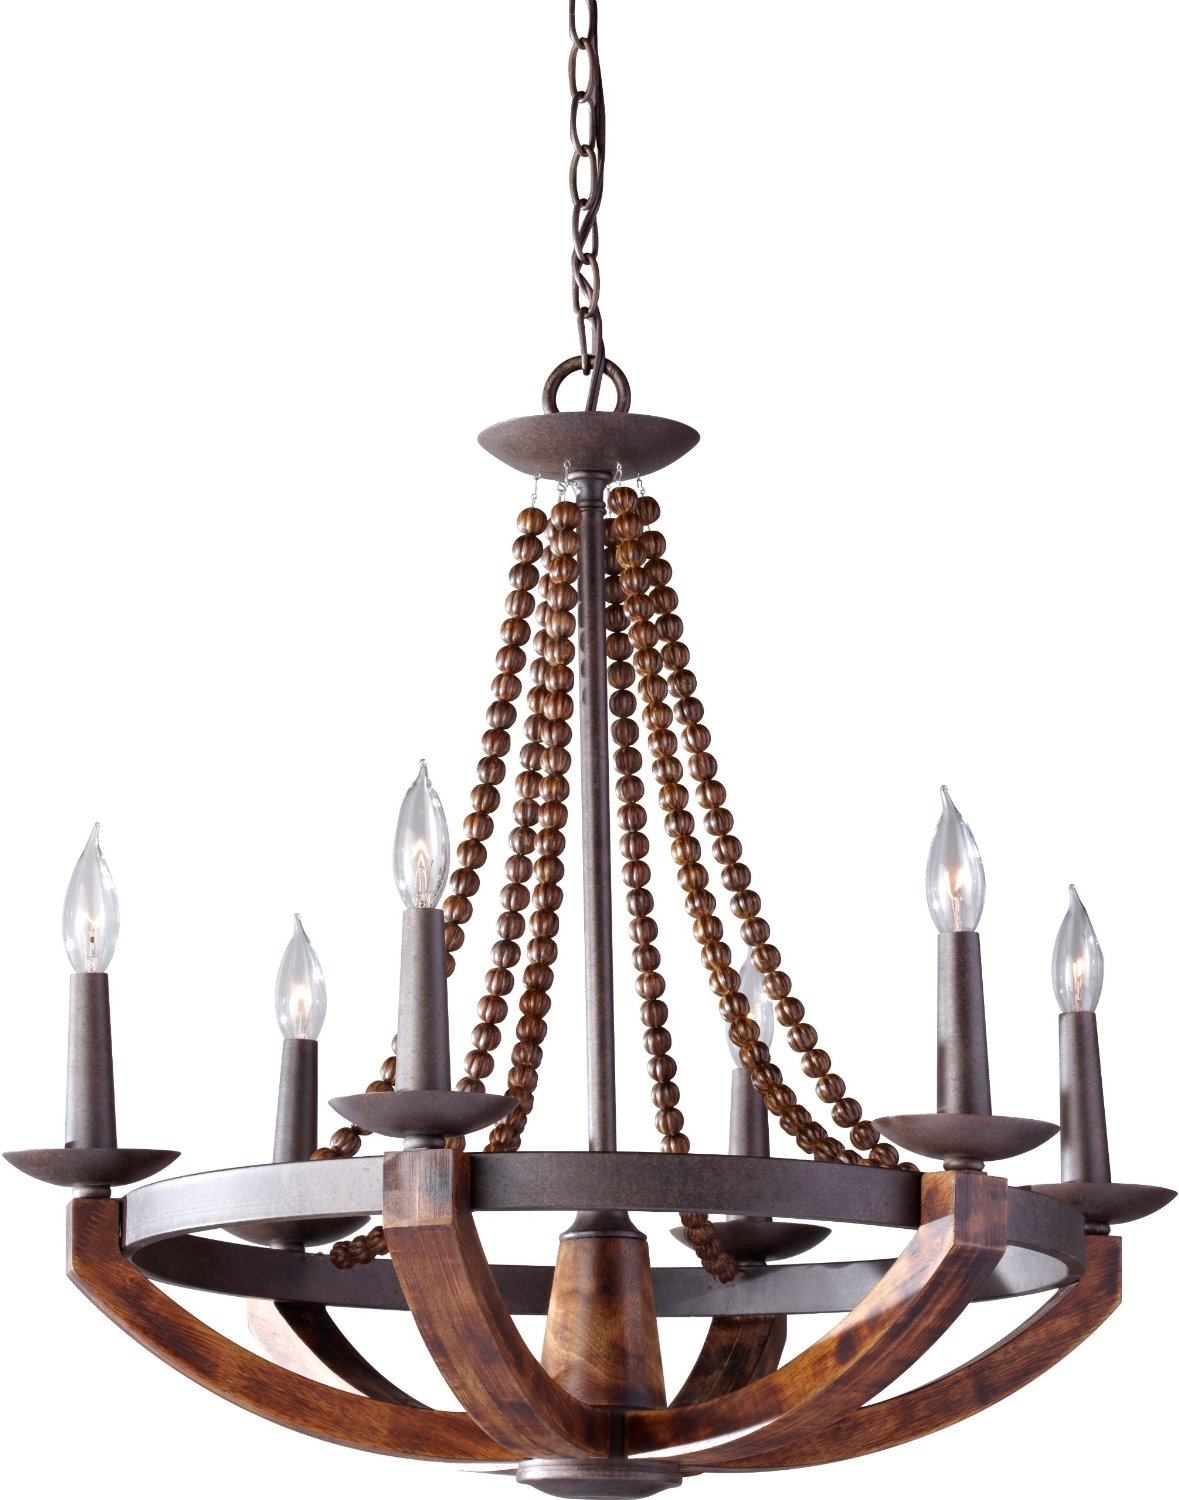 12 Best Rustic Wood And Metal Chandeliers Qosy Within Wooden Chandeliers (View 6 of 15)